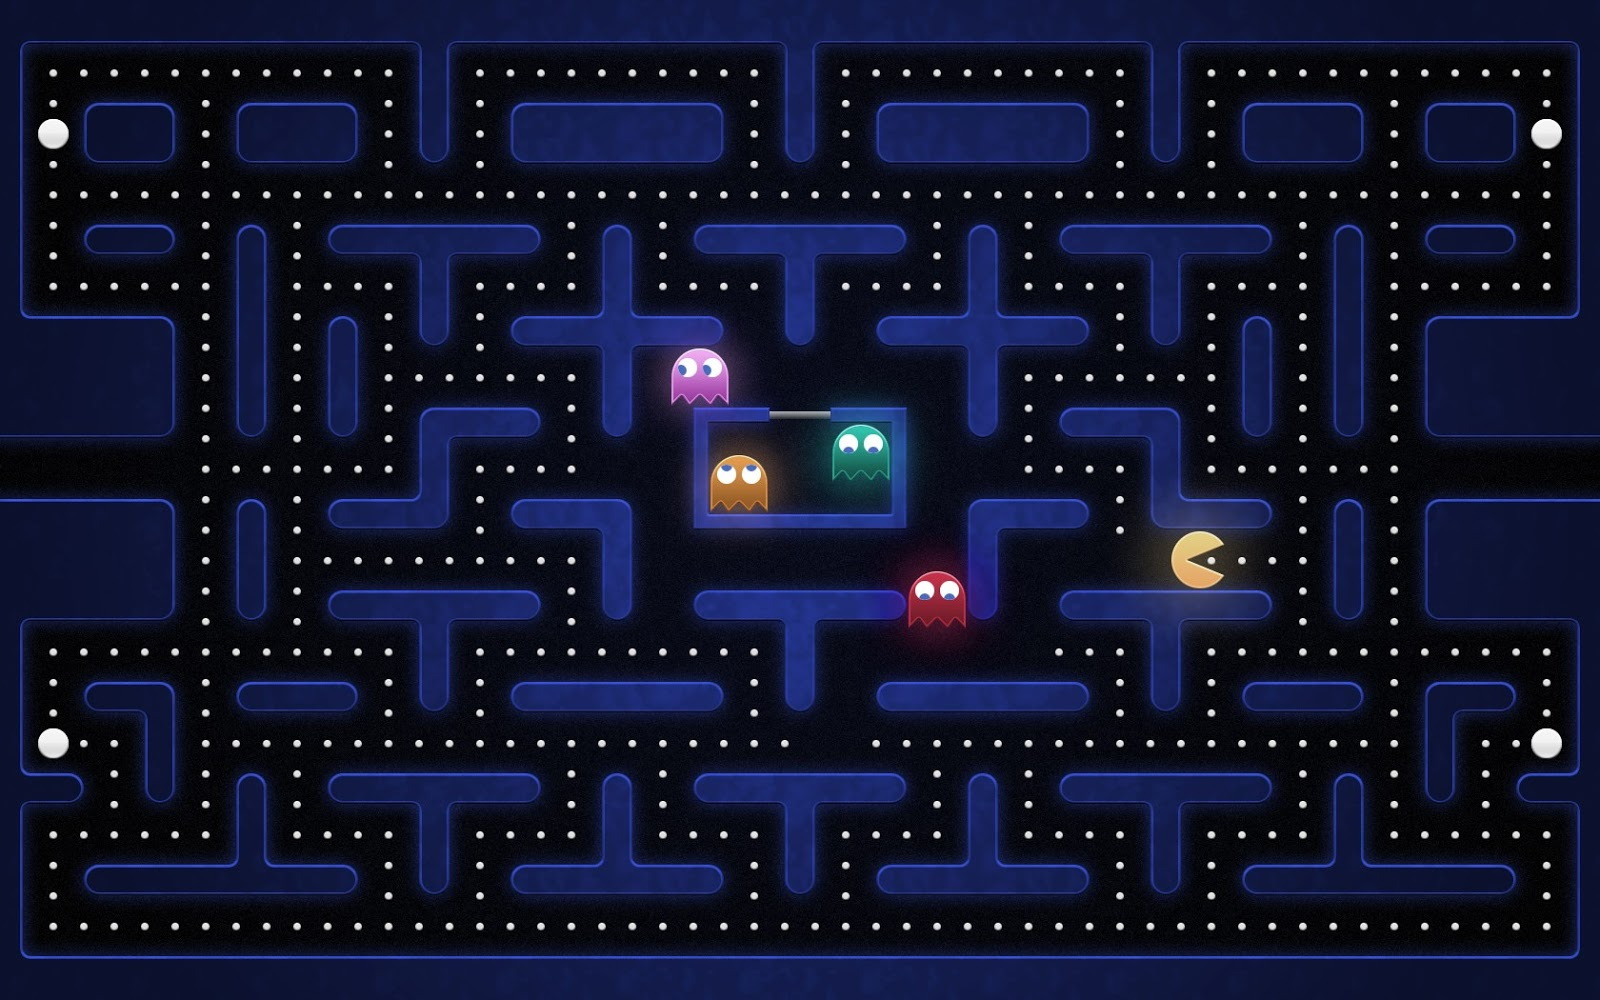 video games pac man retro games wallpaperjpg 1600x1000